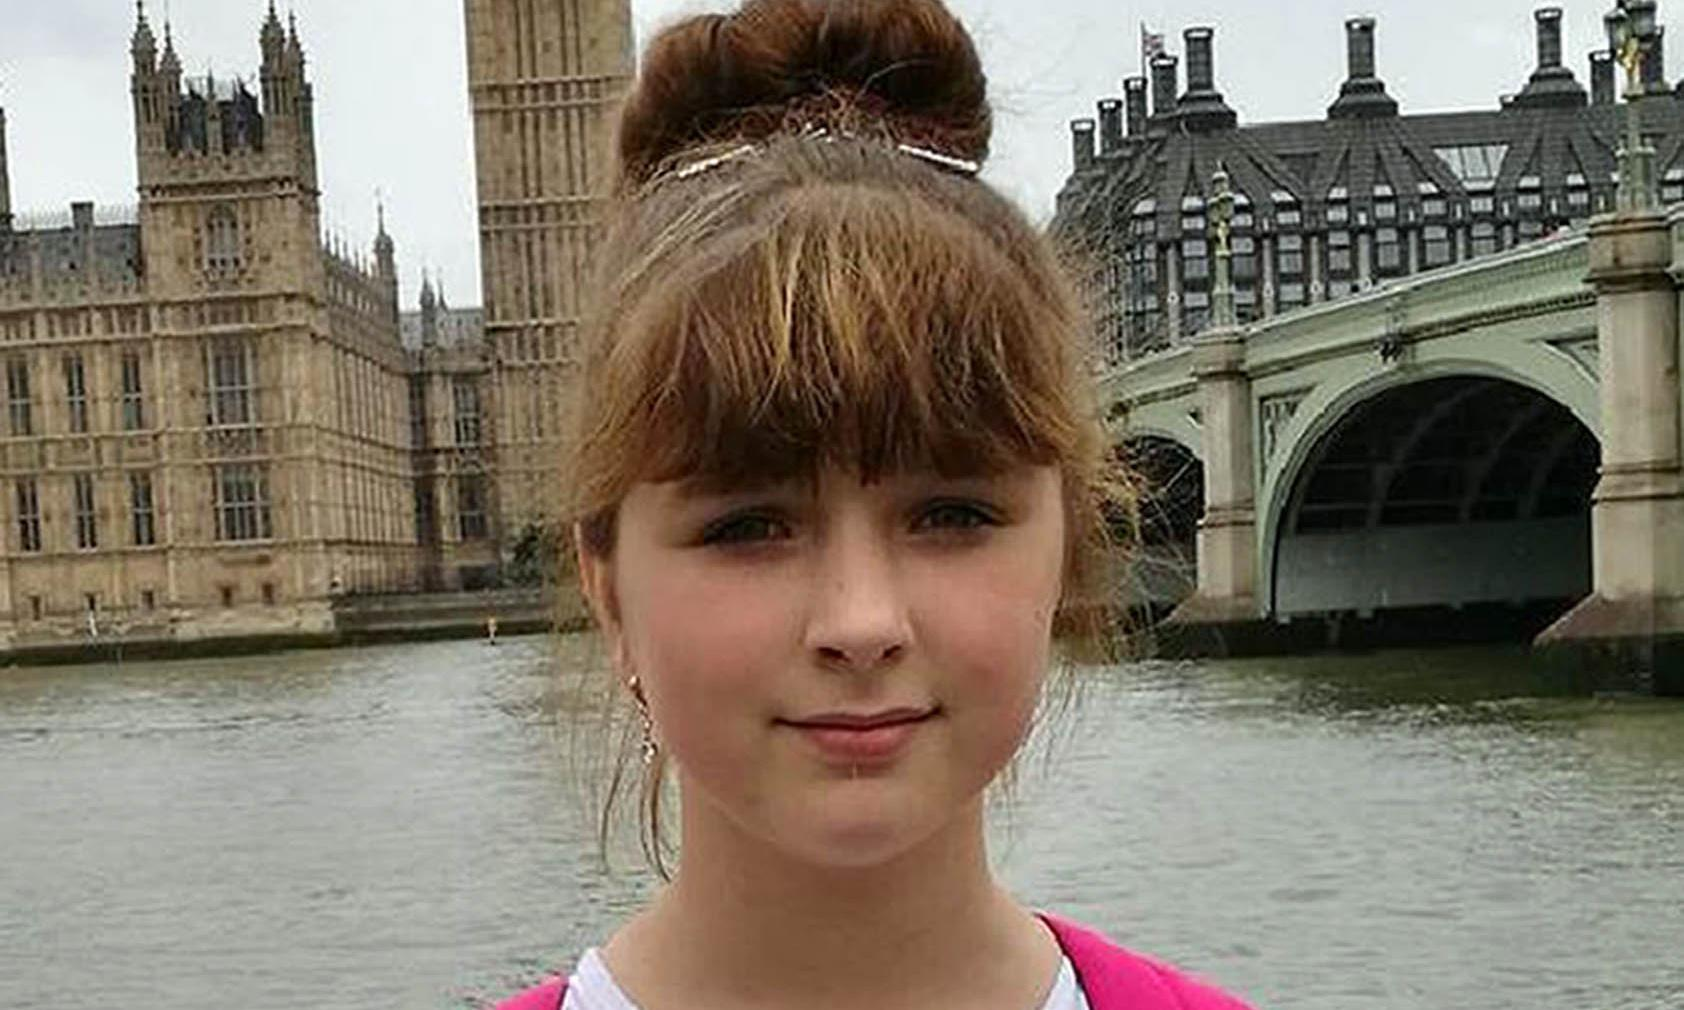 Boy, 17, given life for rape and murder of girl in Wolverhampton